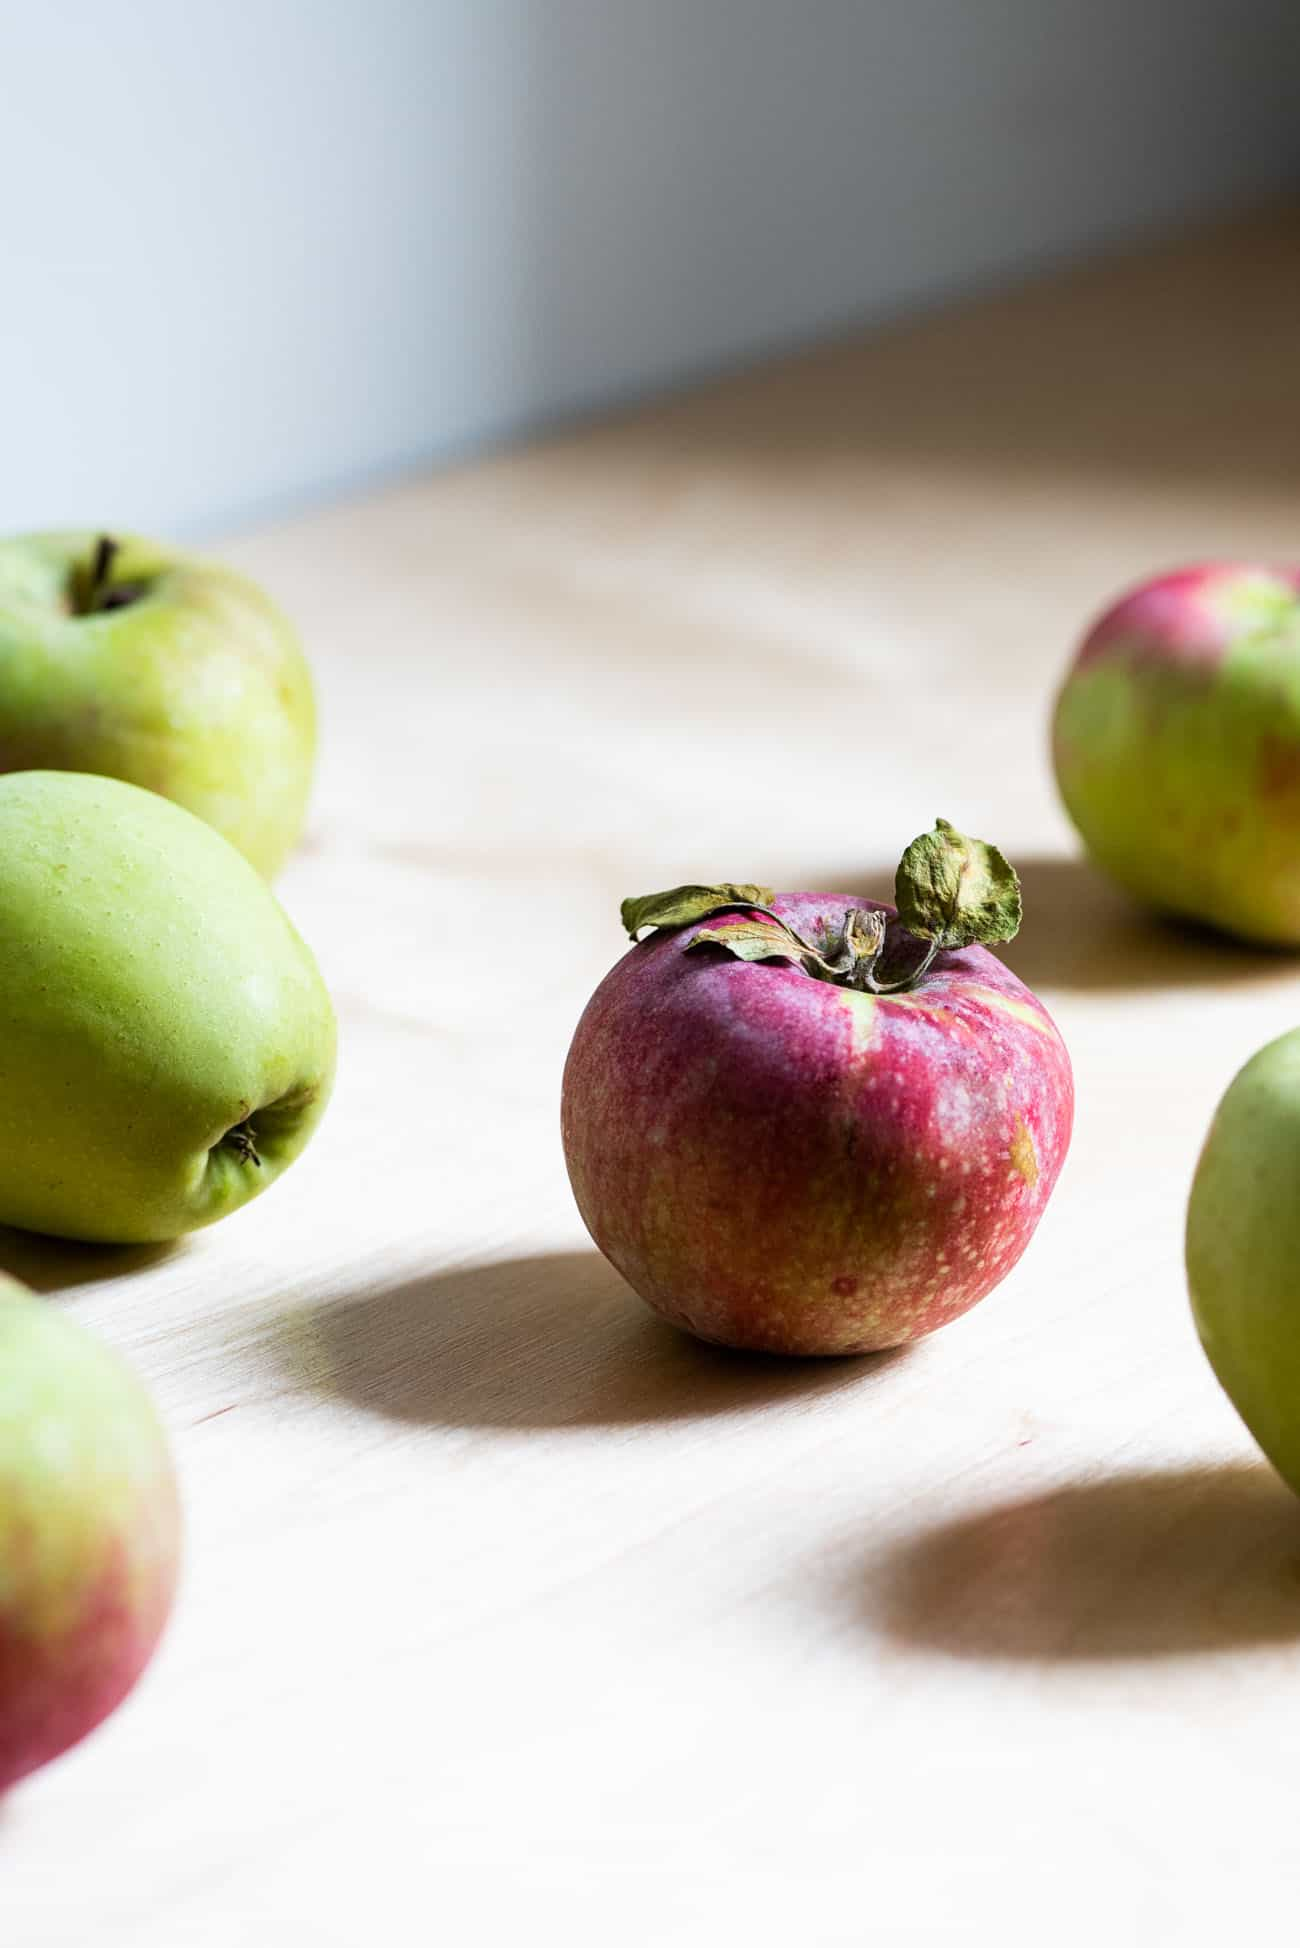 Green and red apples on a wooden kitchen counter